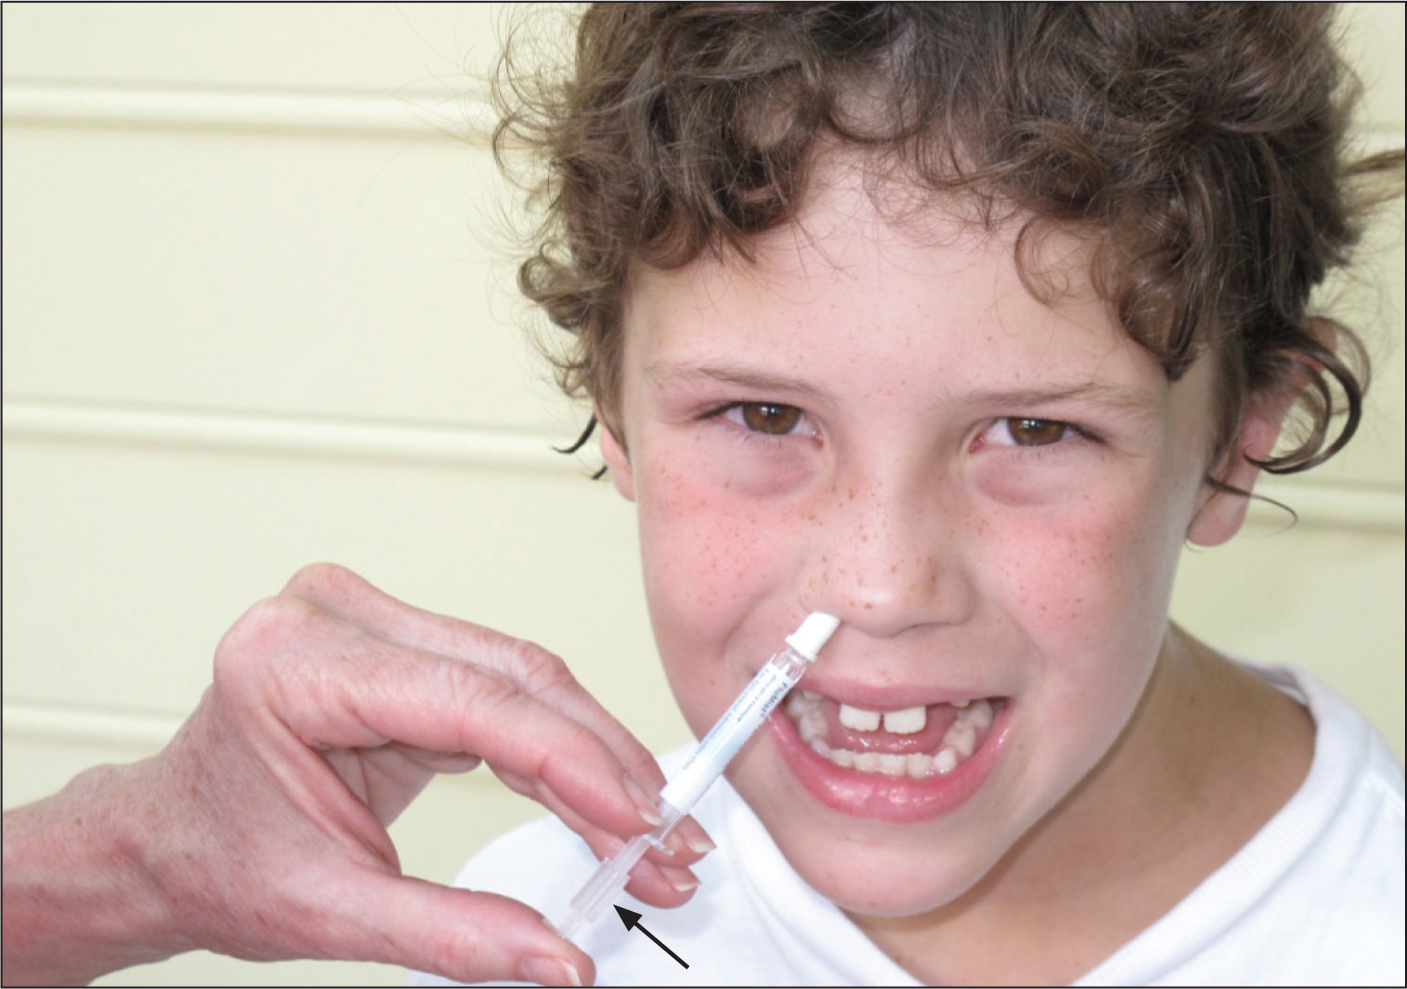 Young boy (not crying!) while receiving the intranasal live, attenuated influenza vaccination. Note the plastic stopper on the syringe plunger (see arrow), which allows the delivery of first one-half of the dose to one nostril.